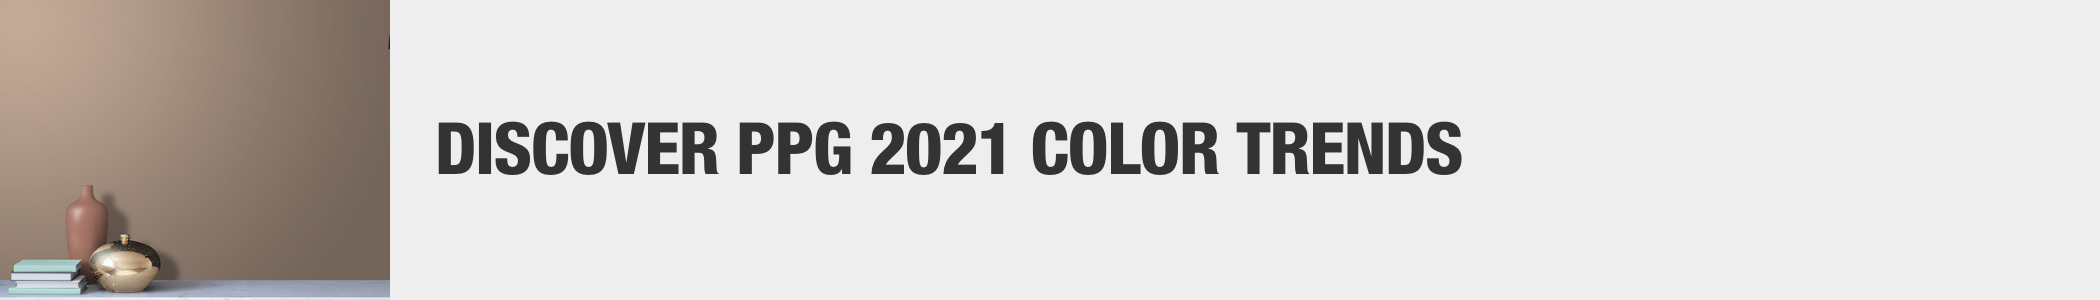 Discover PPG 2021 Color Trends